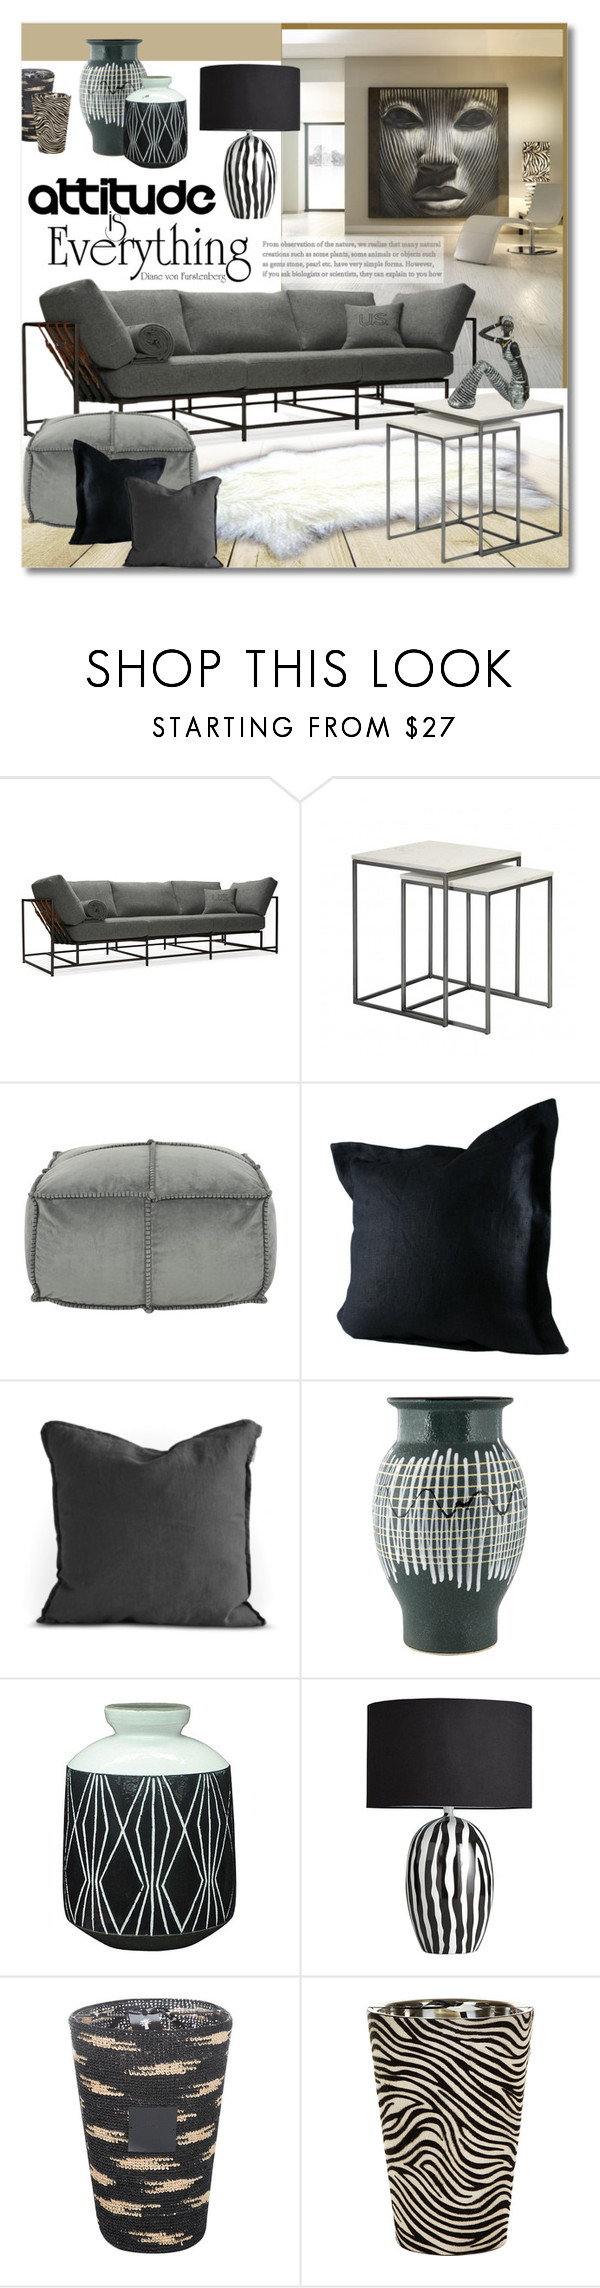 """Untitled #1100"" by valentina1 ❤ liked on Polyvore featuring interior, interiors, interior design, home, home decor, interior decorating, Stephen Kenn, Two Square, Safavieh and Nate Berkus"